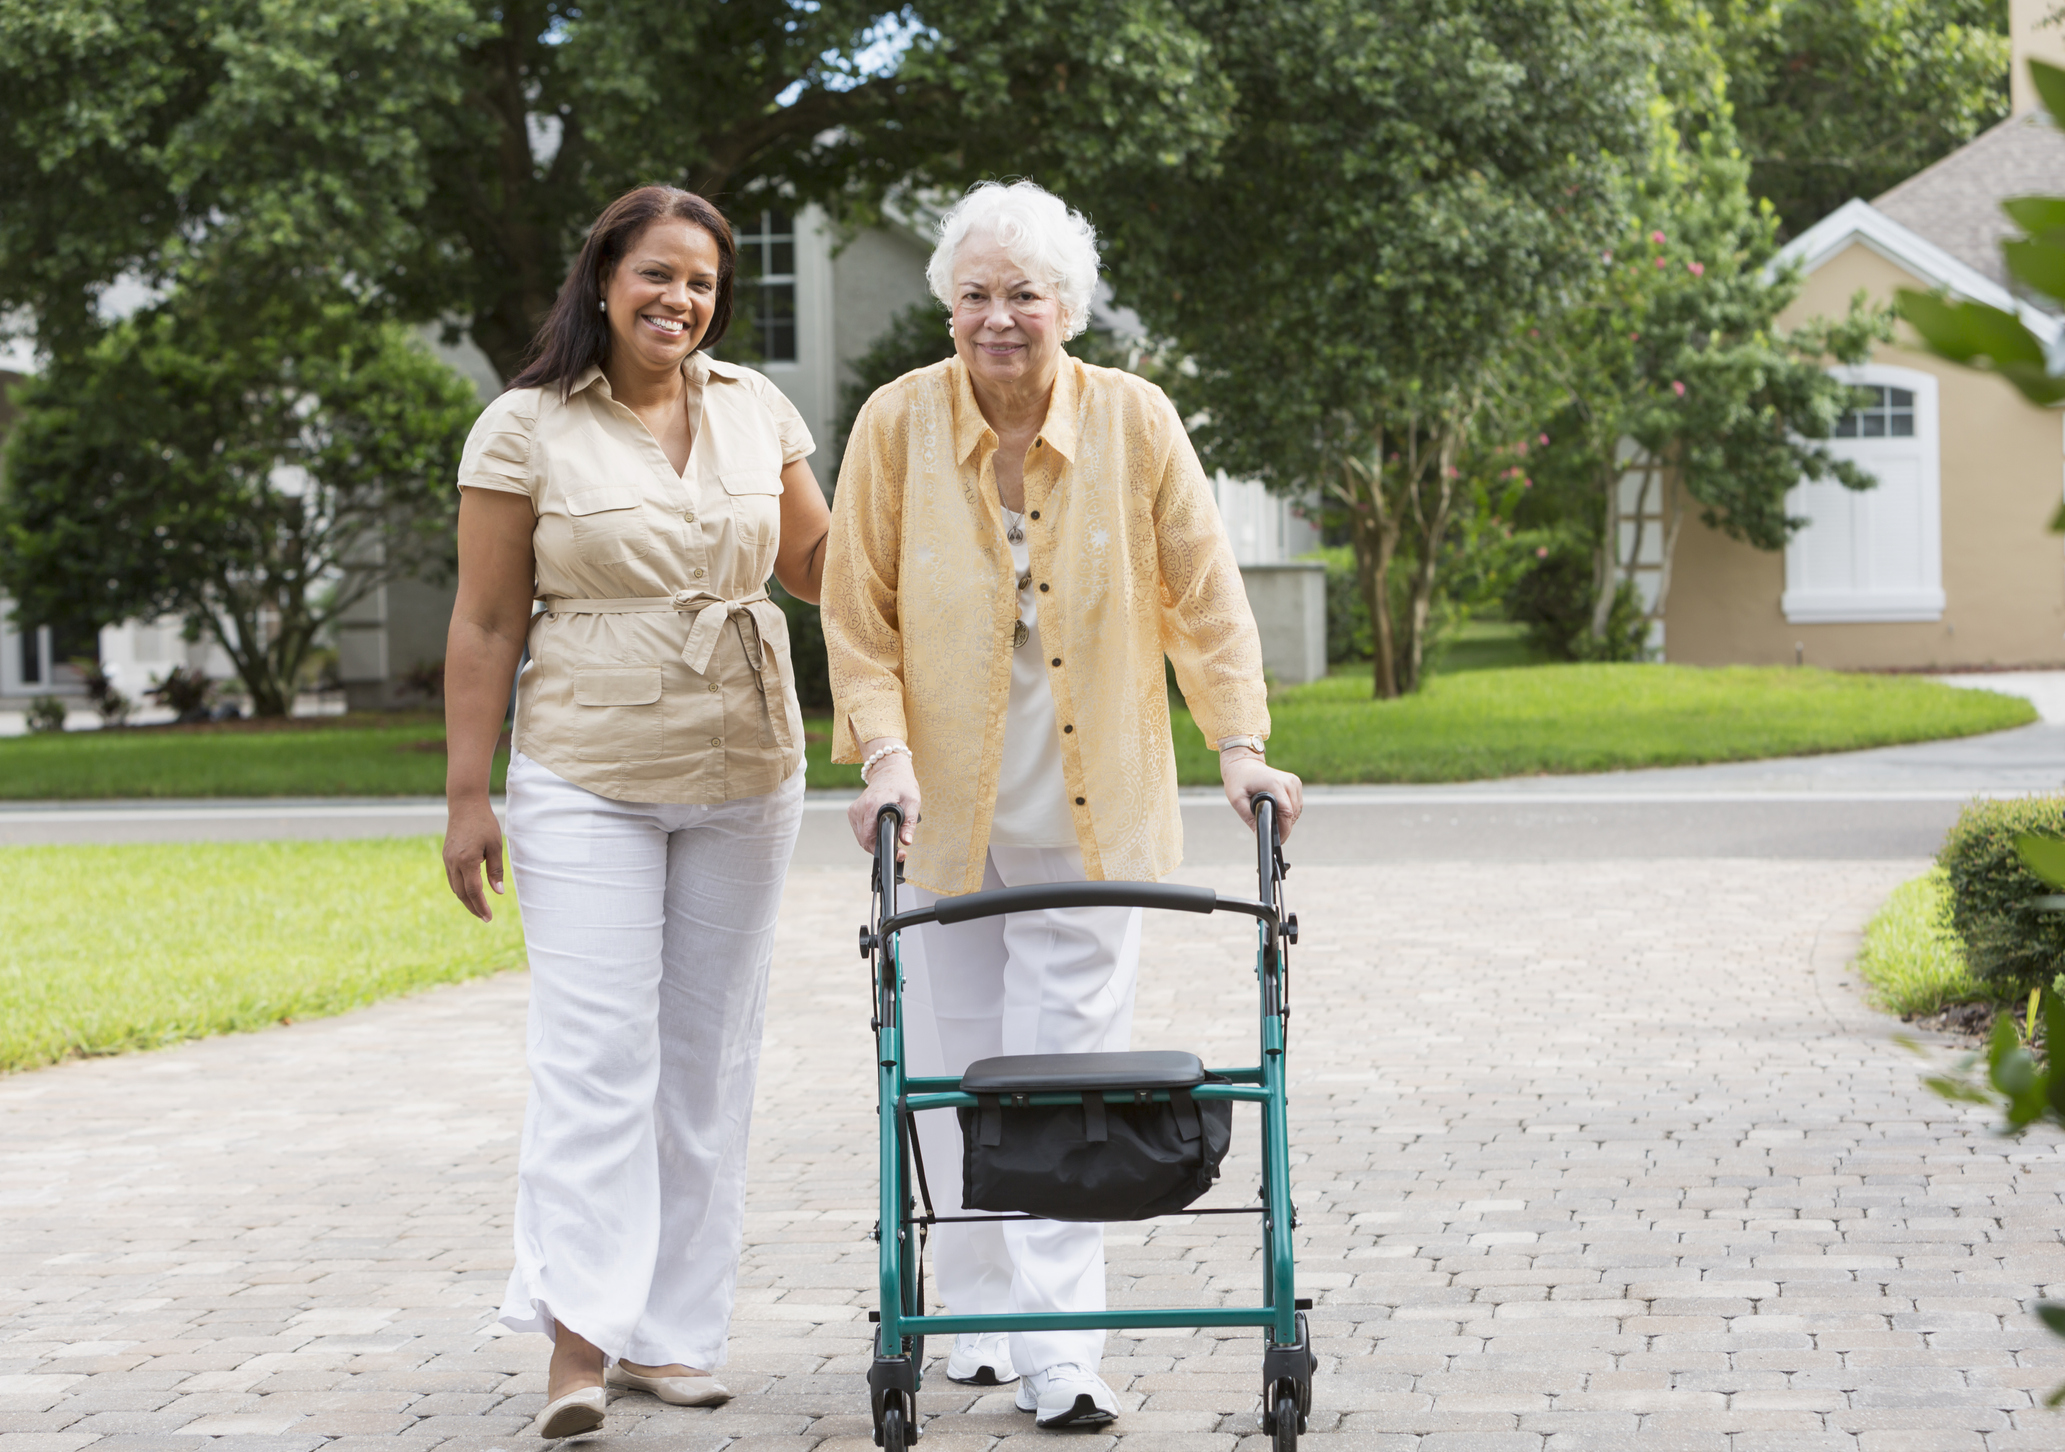 Moving an aging parent into an assisted living can be difficult , follow these tips for easy transition.